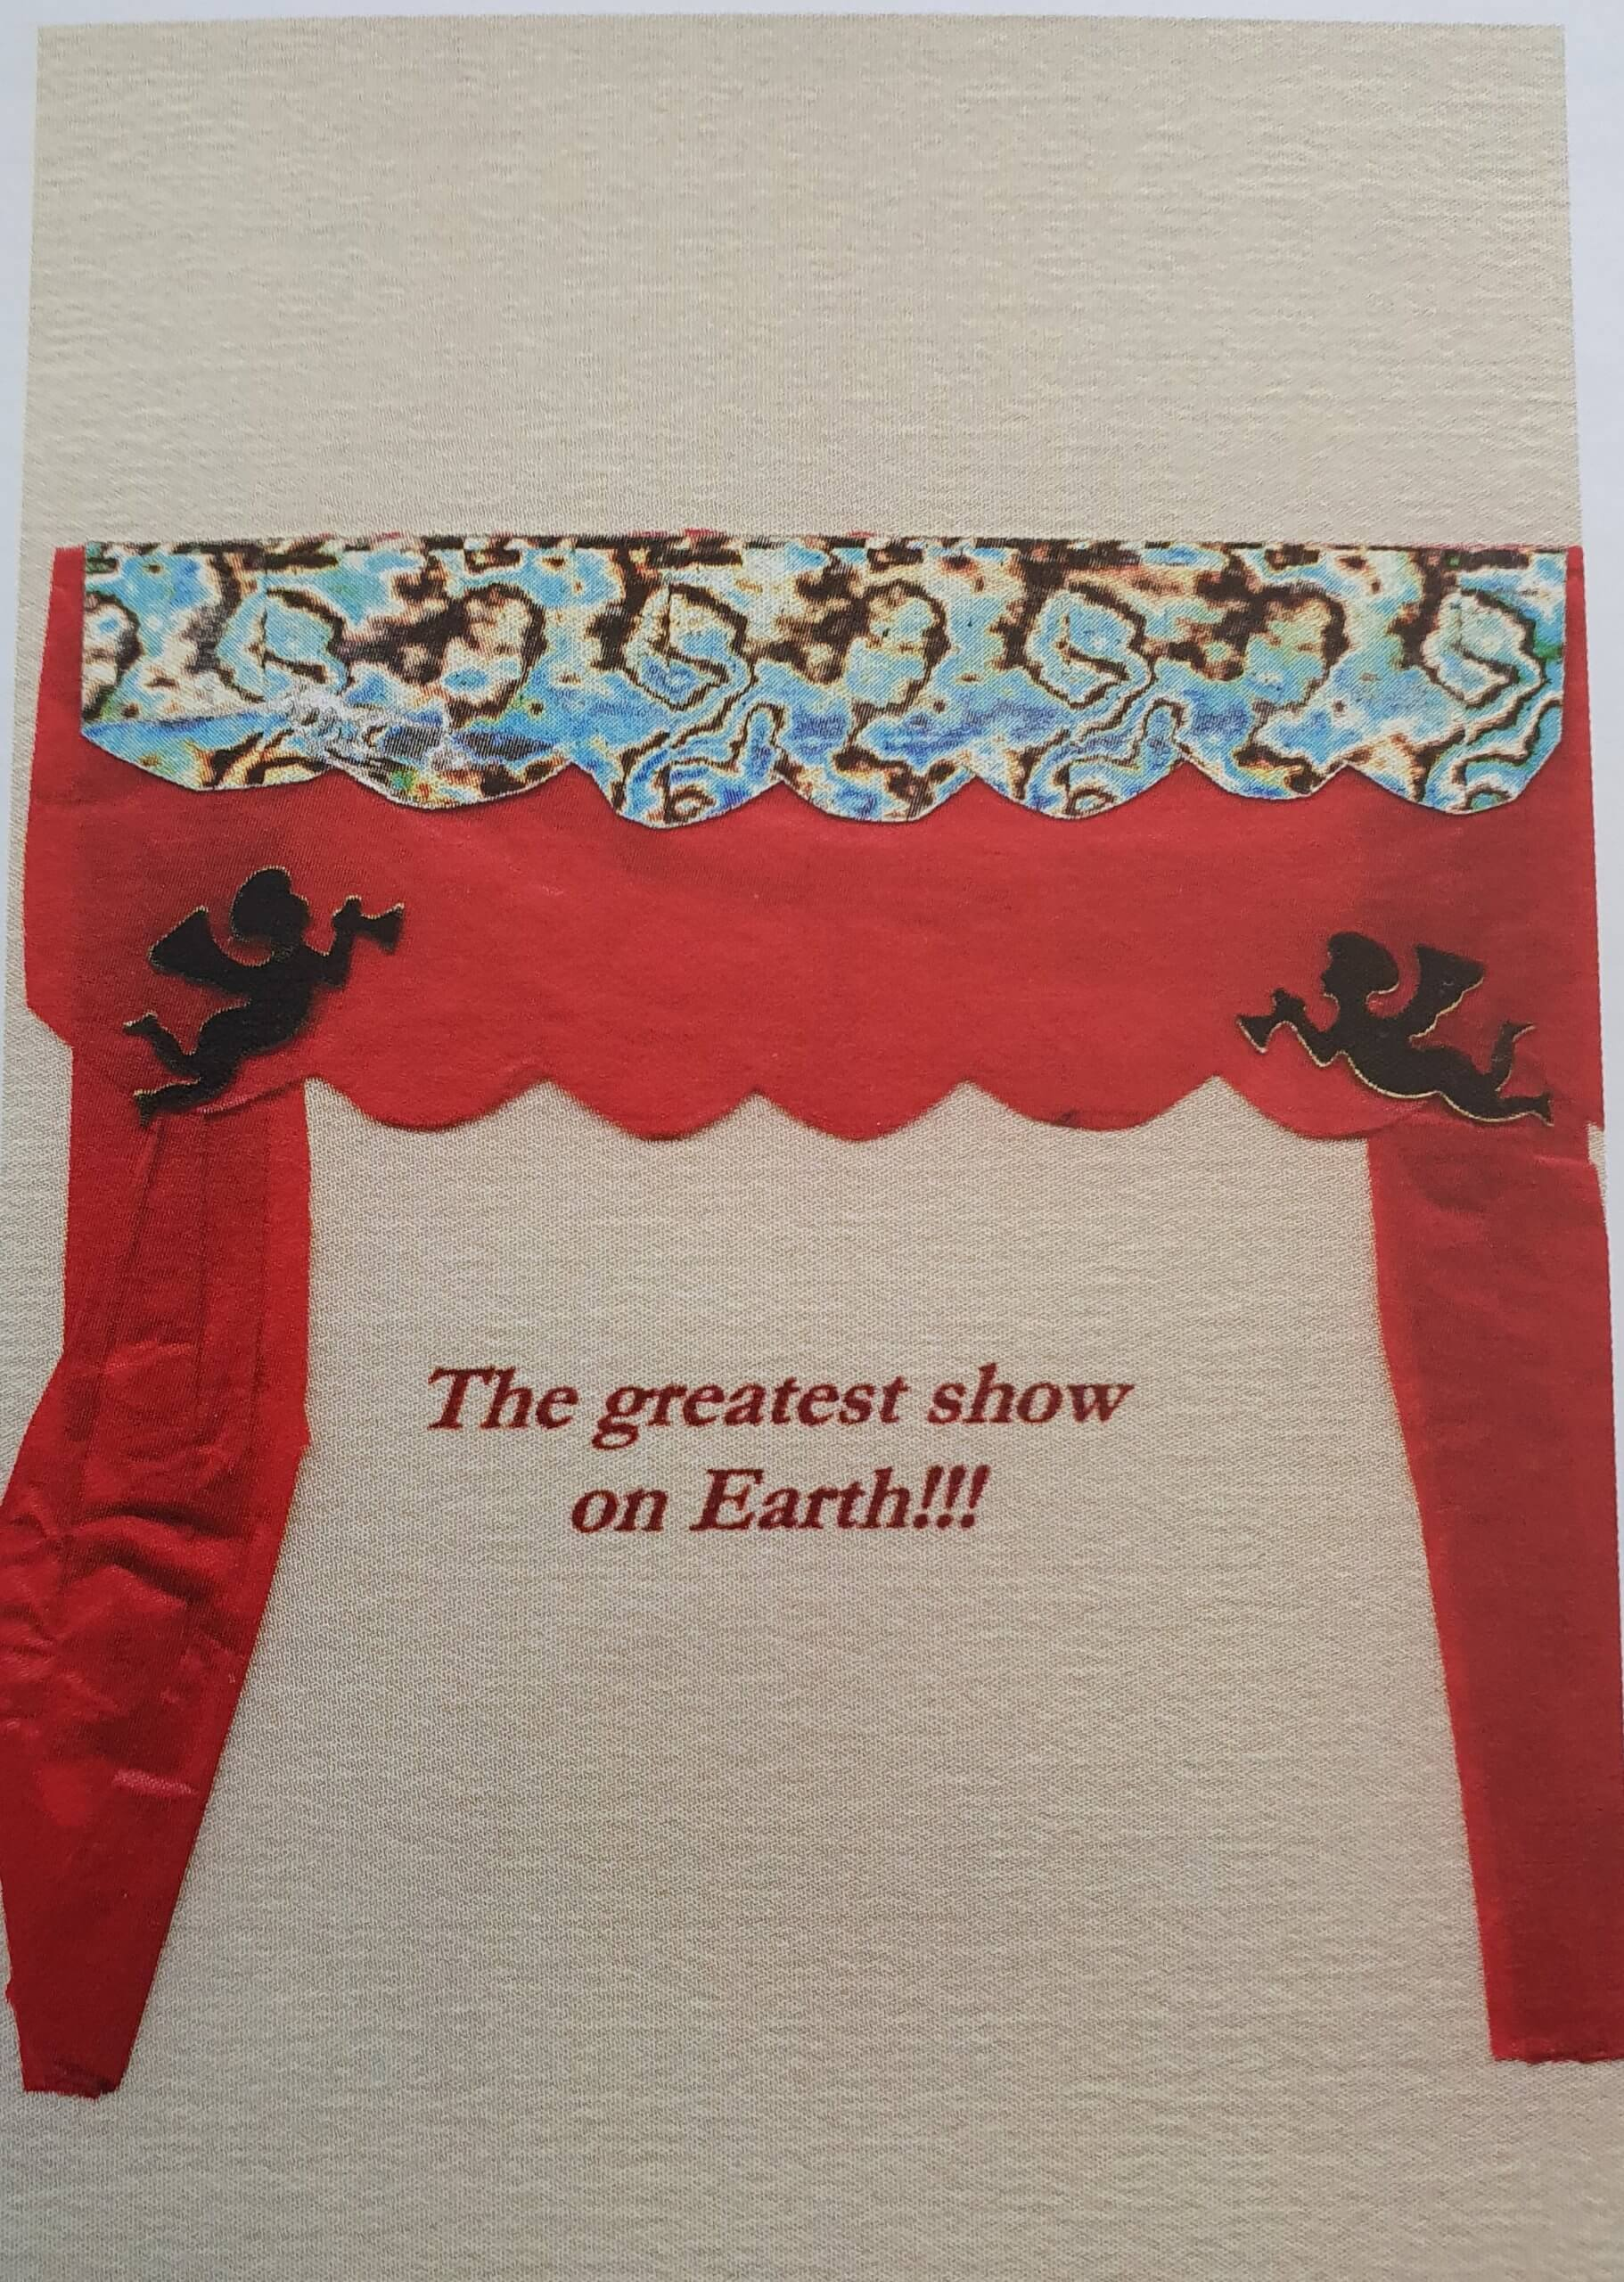 The greatest show on earth. Kerstkaart 2000.